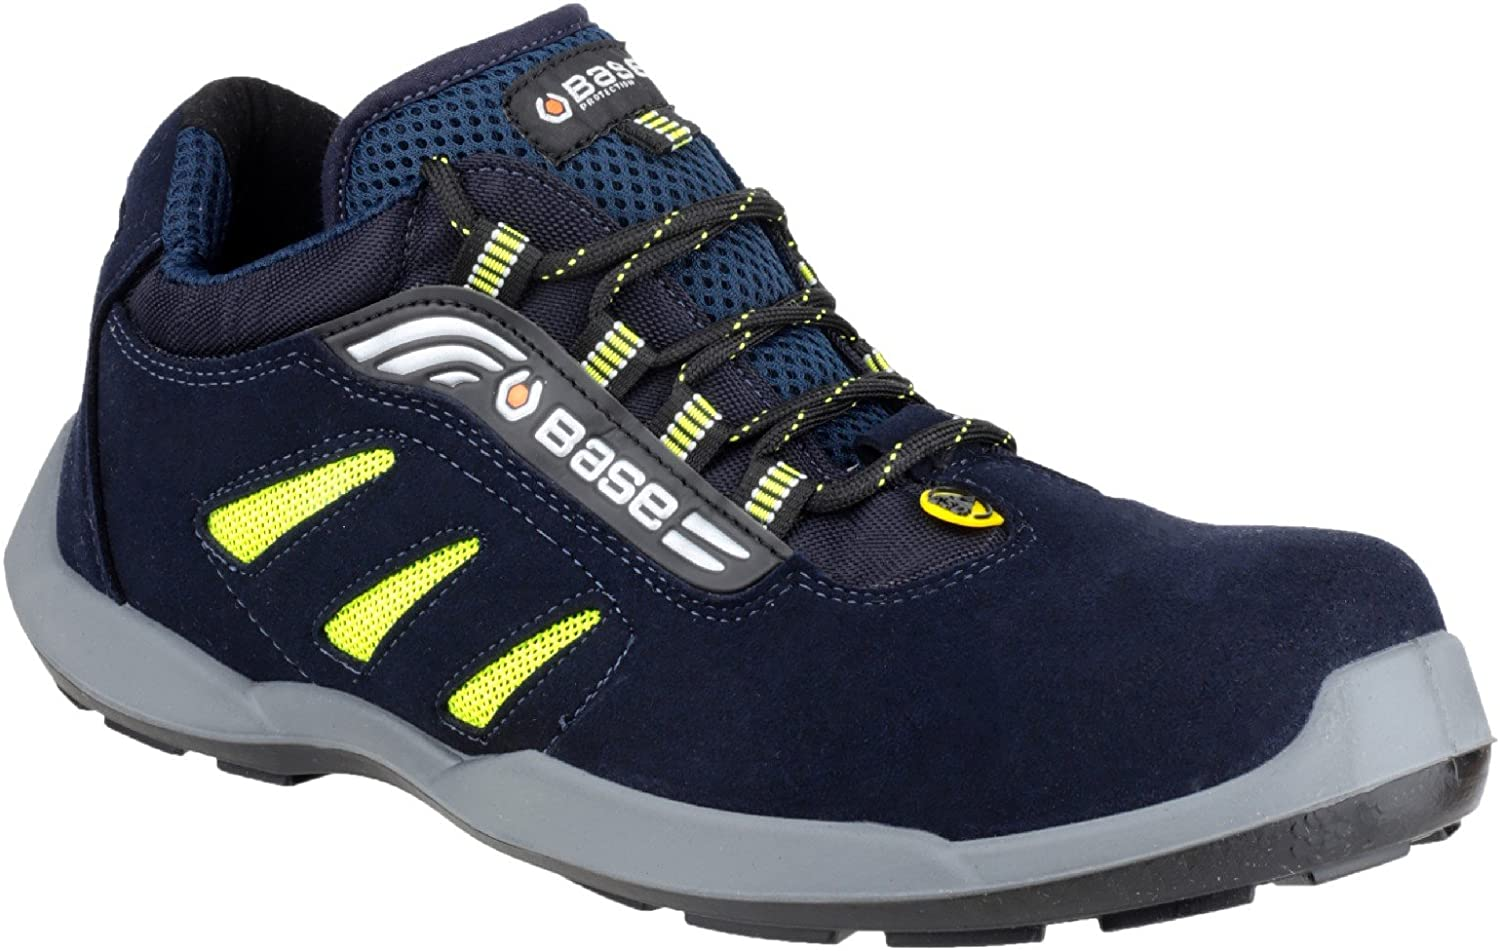 BASE PredECTION BAS-B647-65 Frisbee Safety shoes, bluee, UK 0.5 EU 40